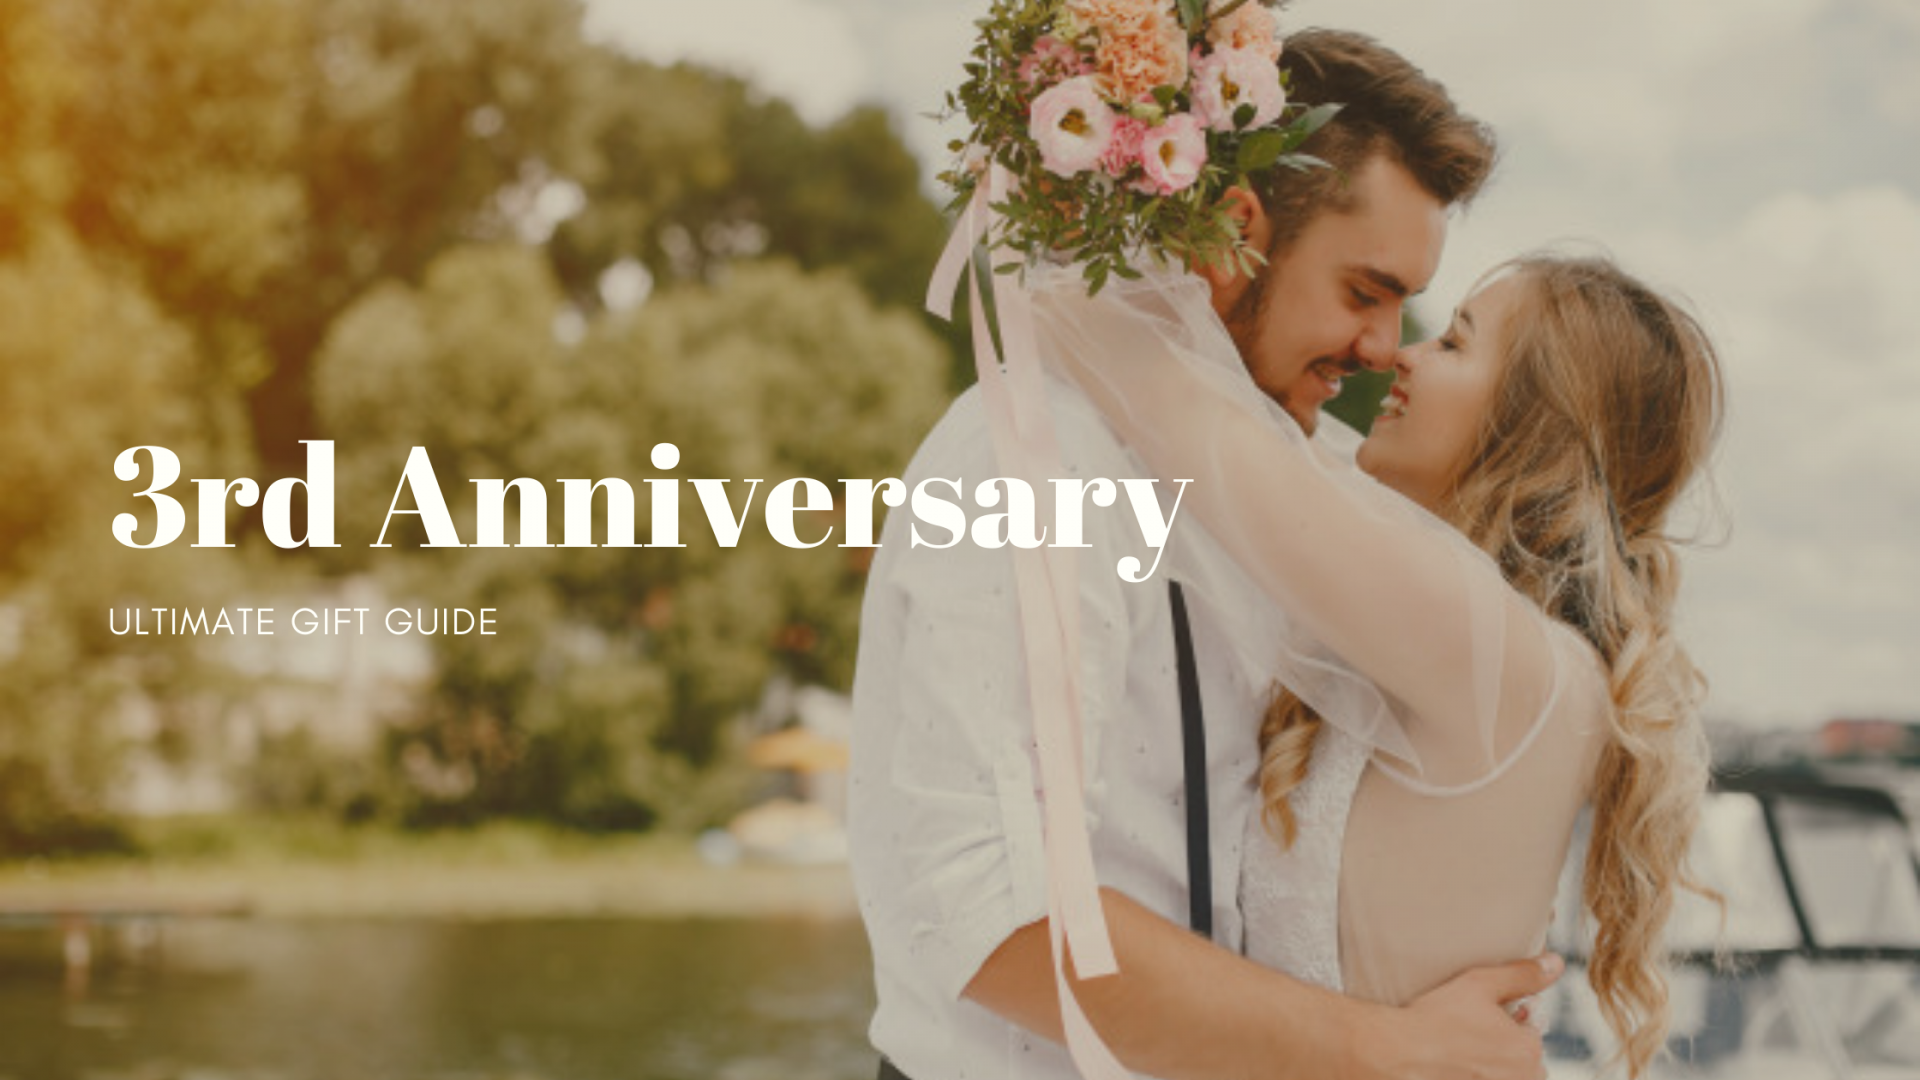 31 Incredible 3rd Anniversary Gifts for Your Sweetheart